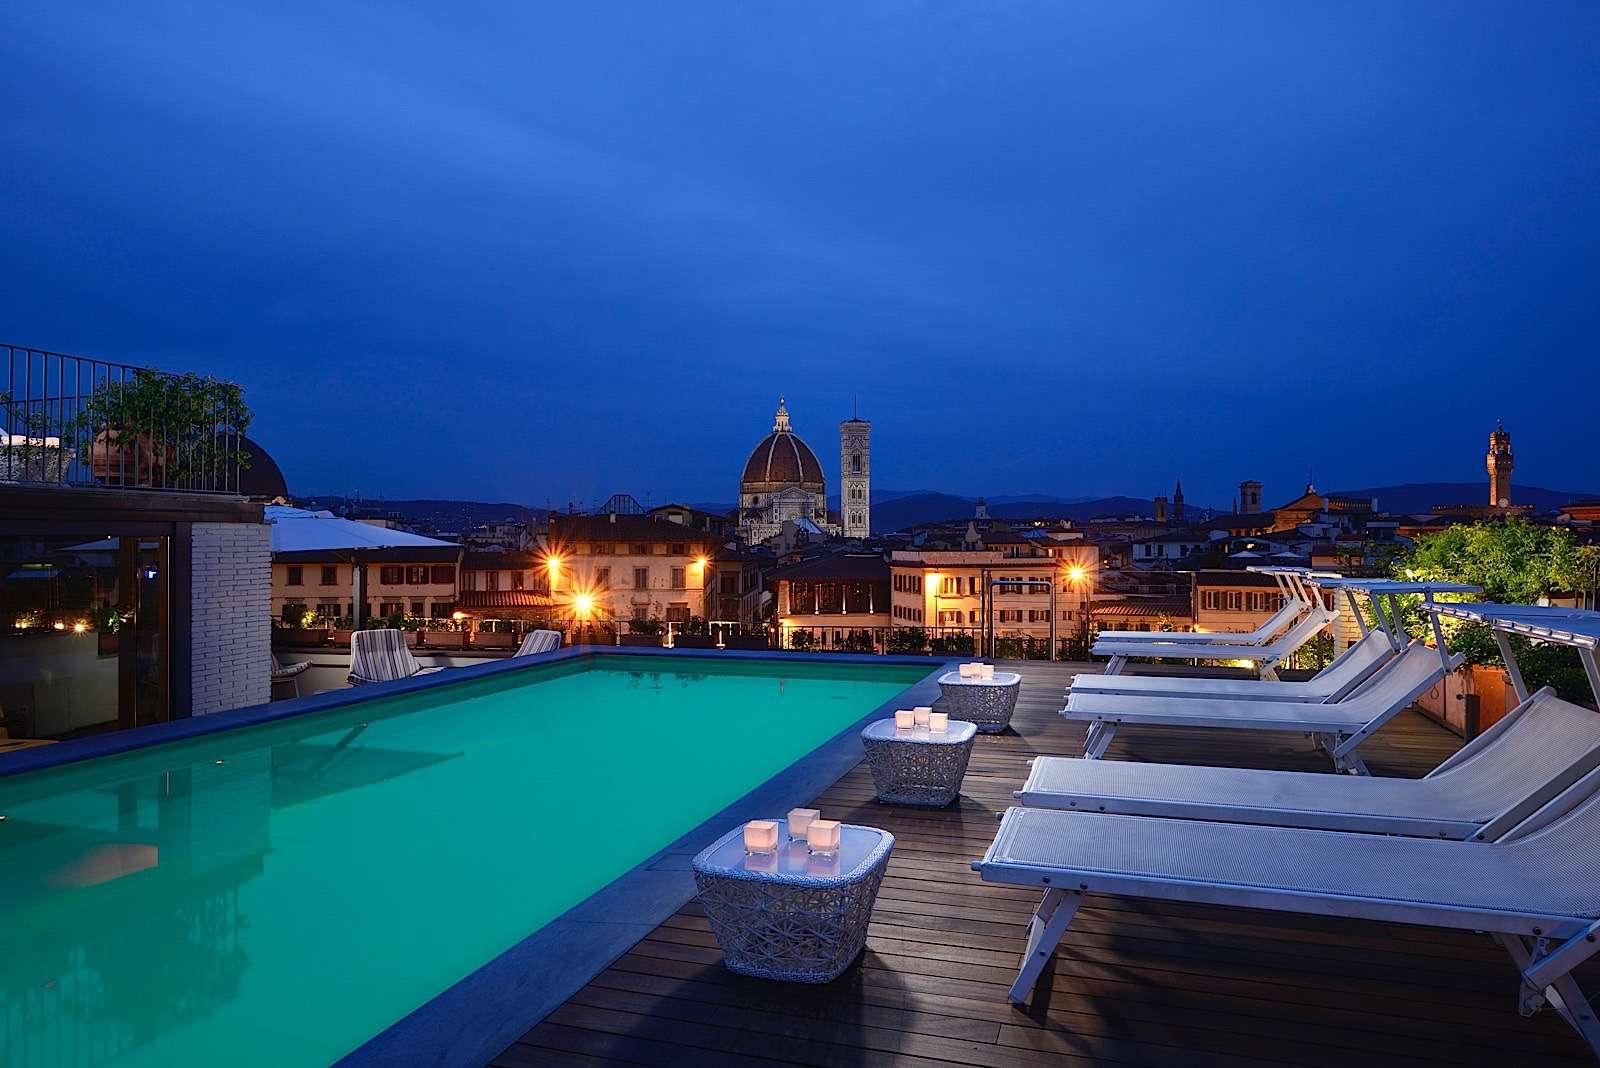 Sky Lounge at Grand Hotel Minerva, Florence